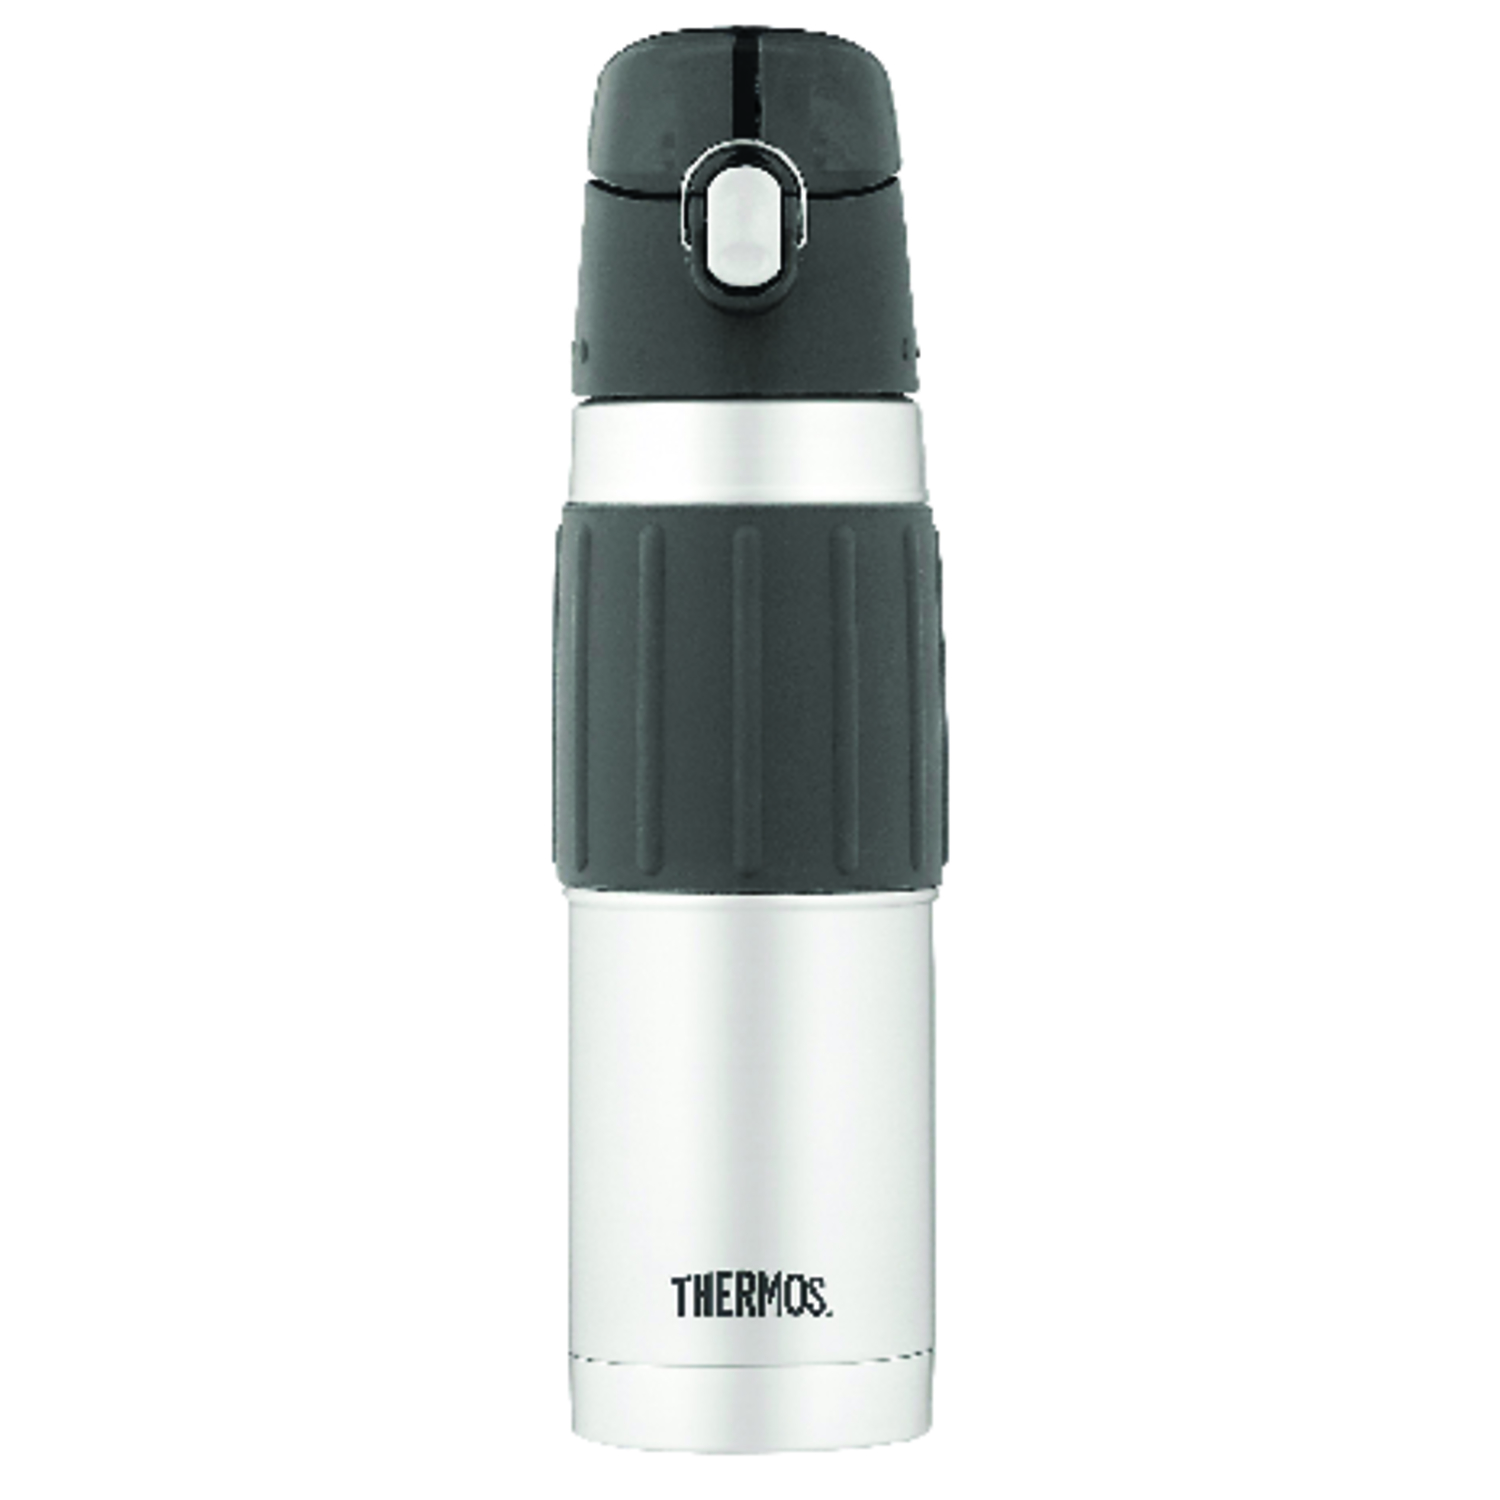 Thermos Hydration 2465 Bottle Replacement Lid Best